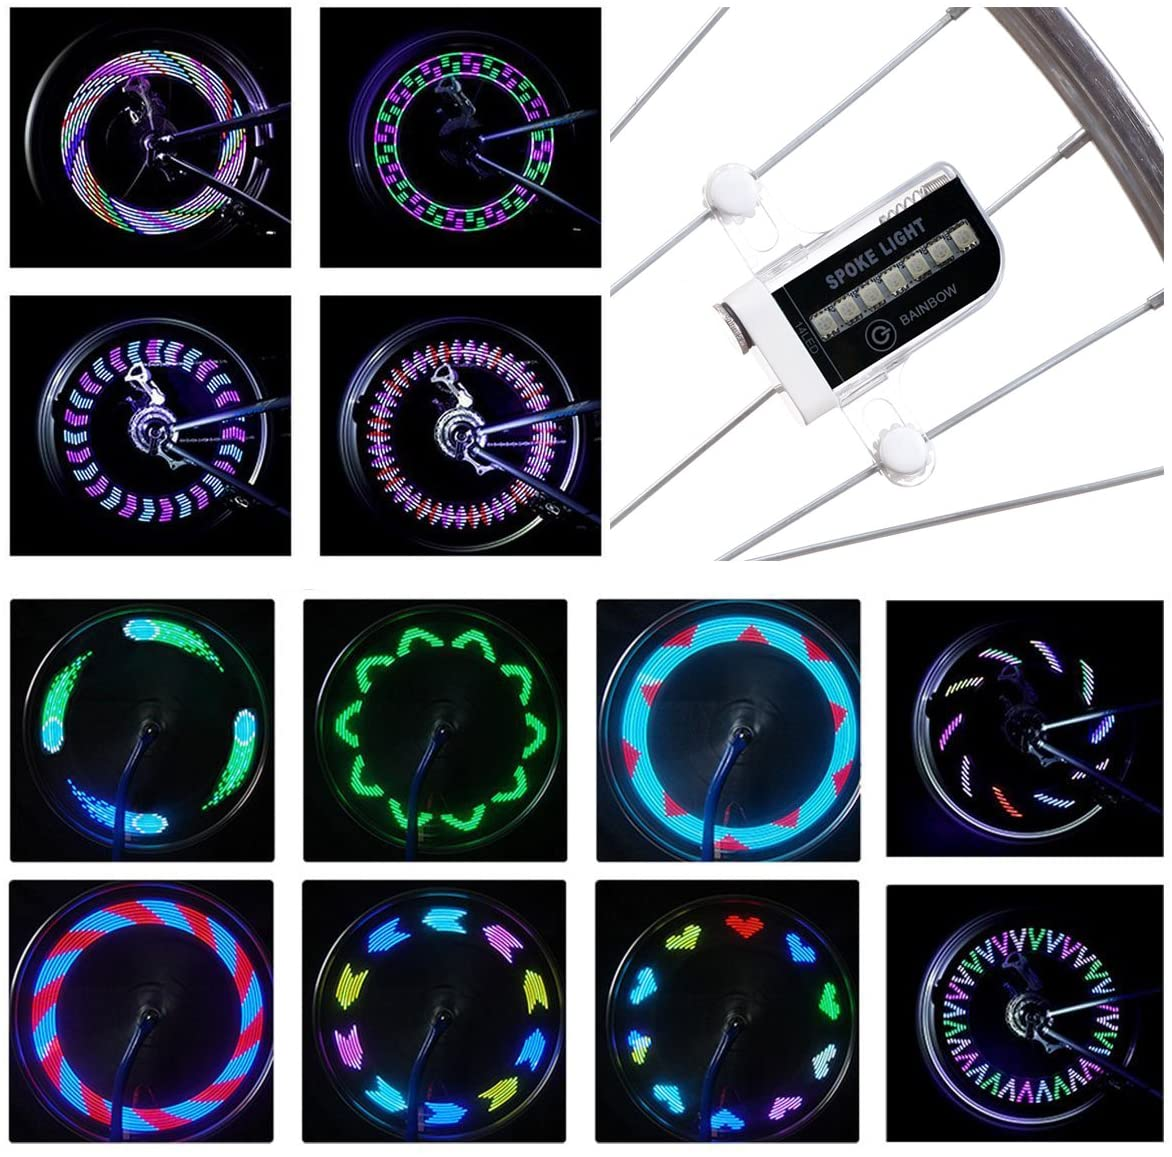 DAWAY LED Bike Spoke Lights - A12 Waterproof Cool Bicycle Wheel Light, Safety Tire Lights for Kids Adults, Very Bright, Auto & Manual Dual Switch, 30 Pattern, Include Battery